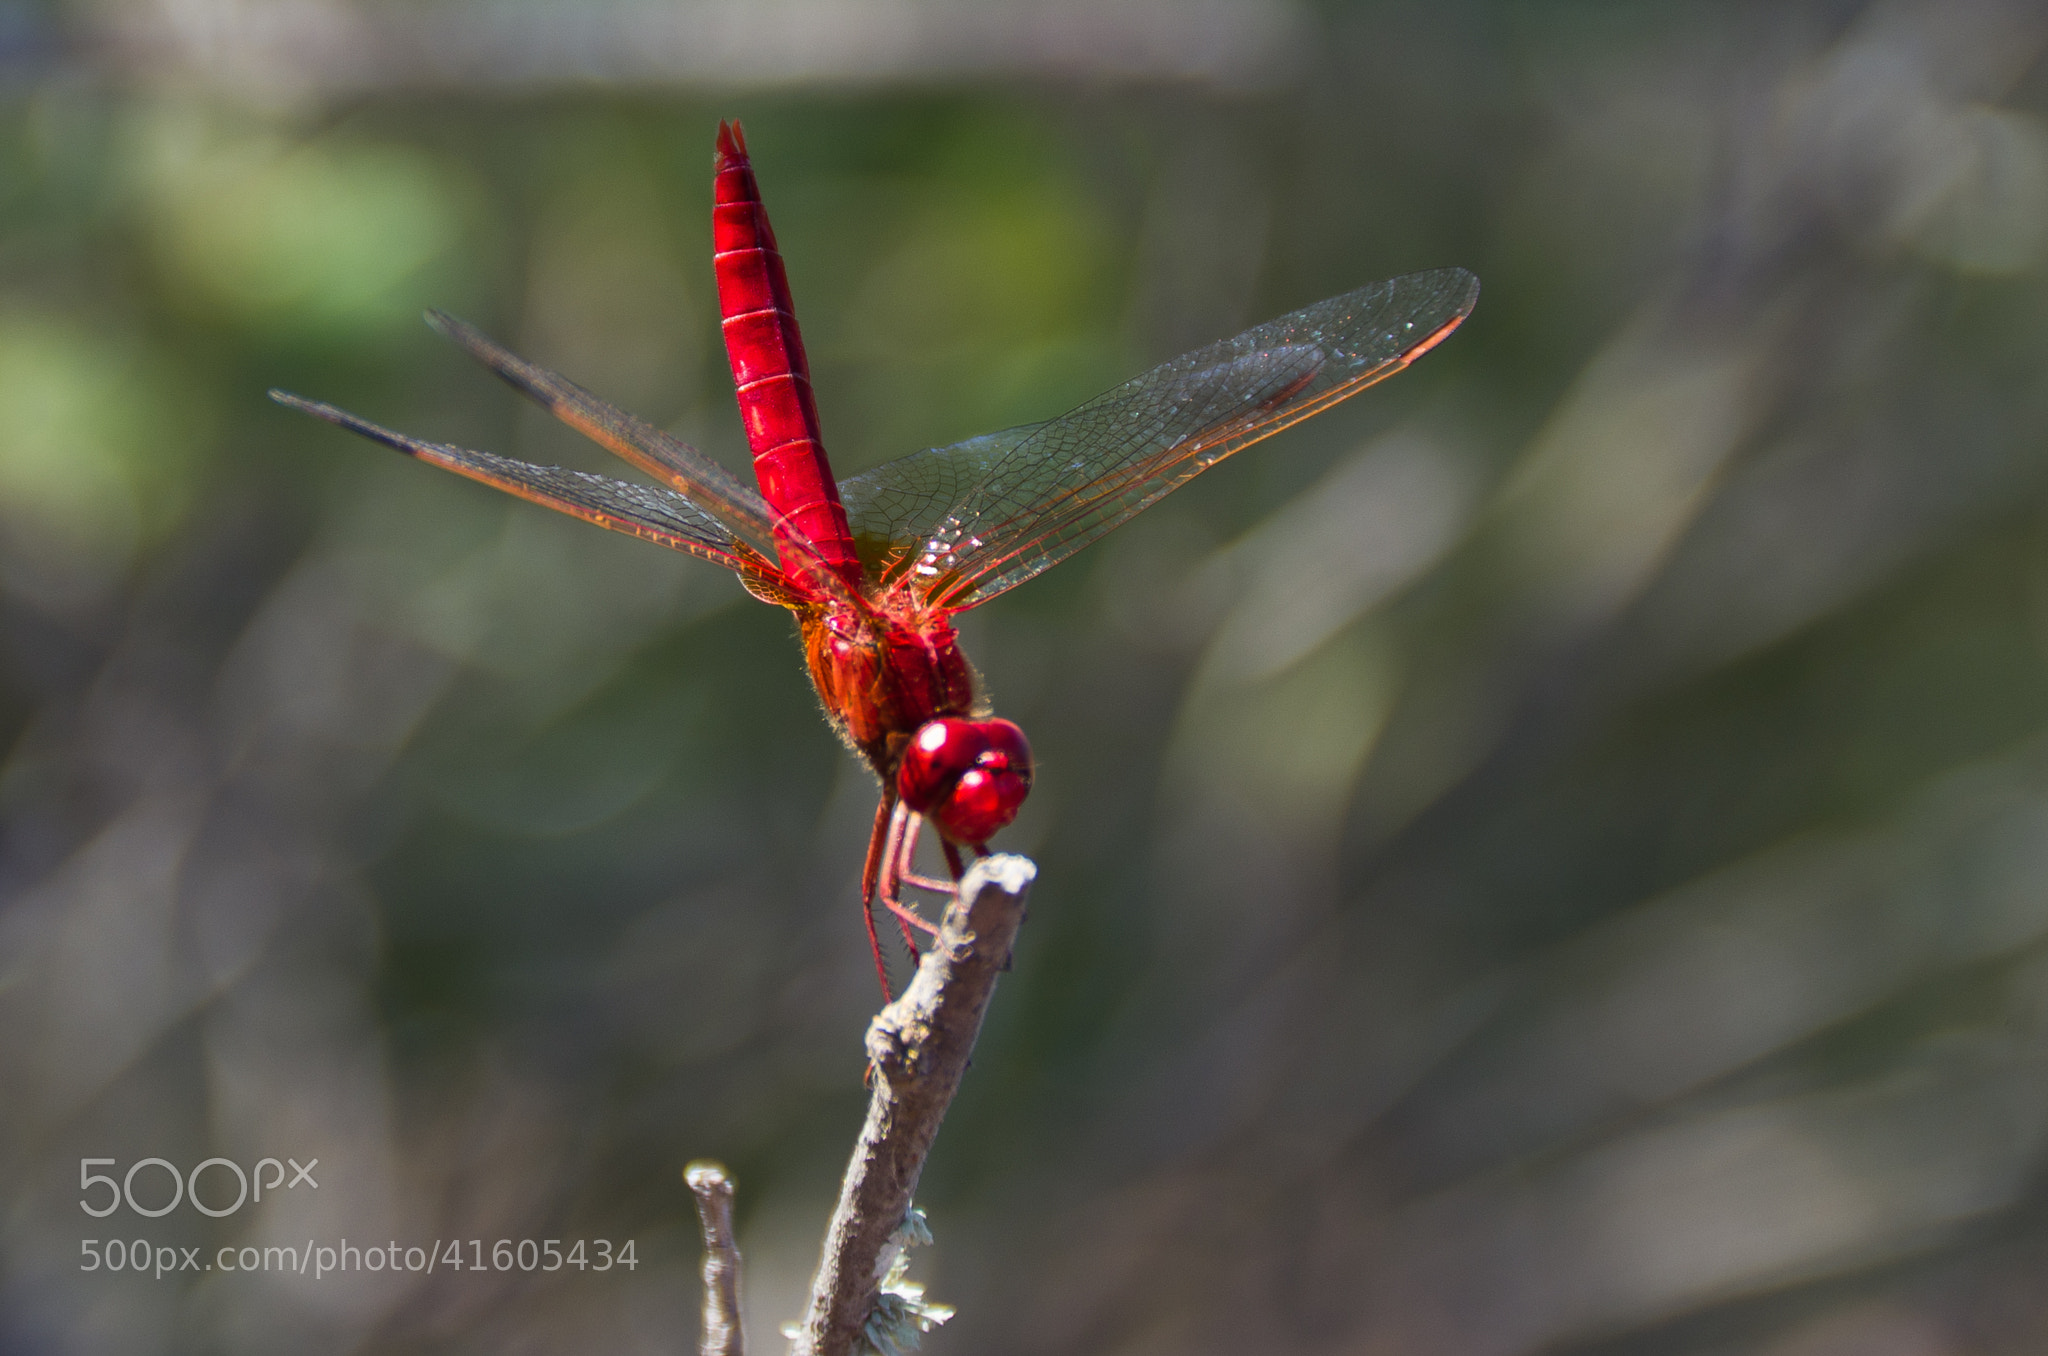 Photograph Red dragonfly by Christian Olivares on 500px